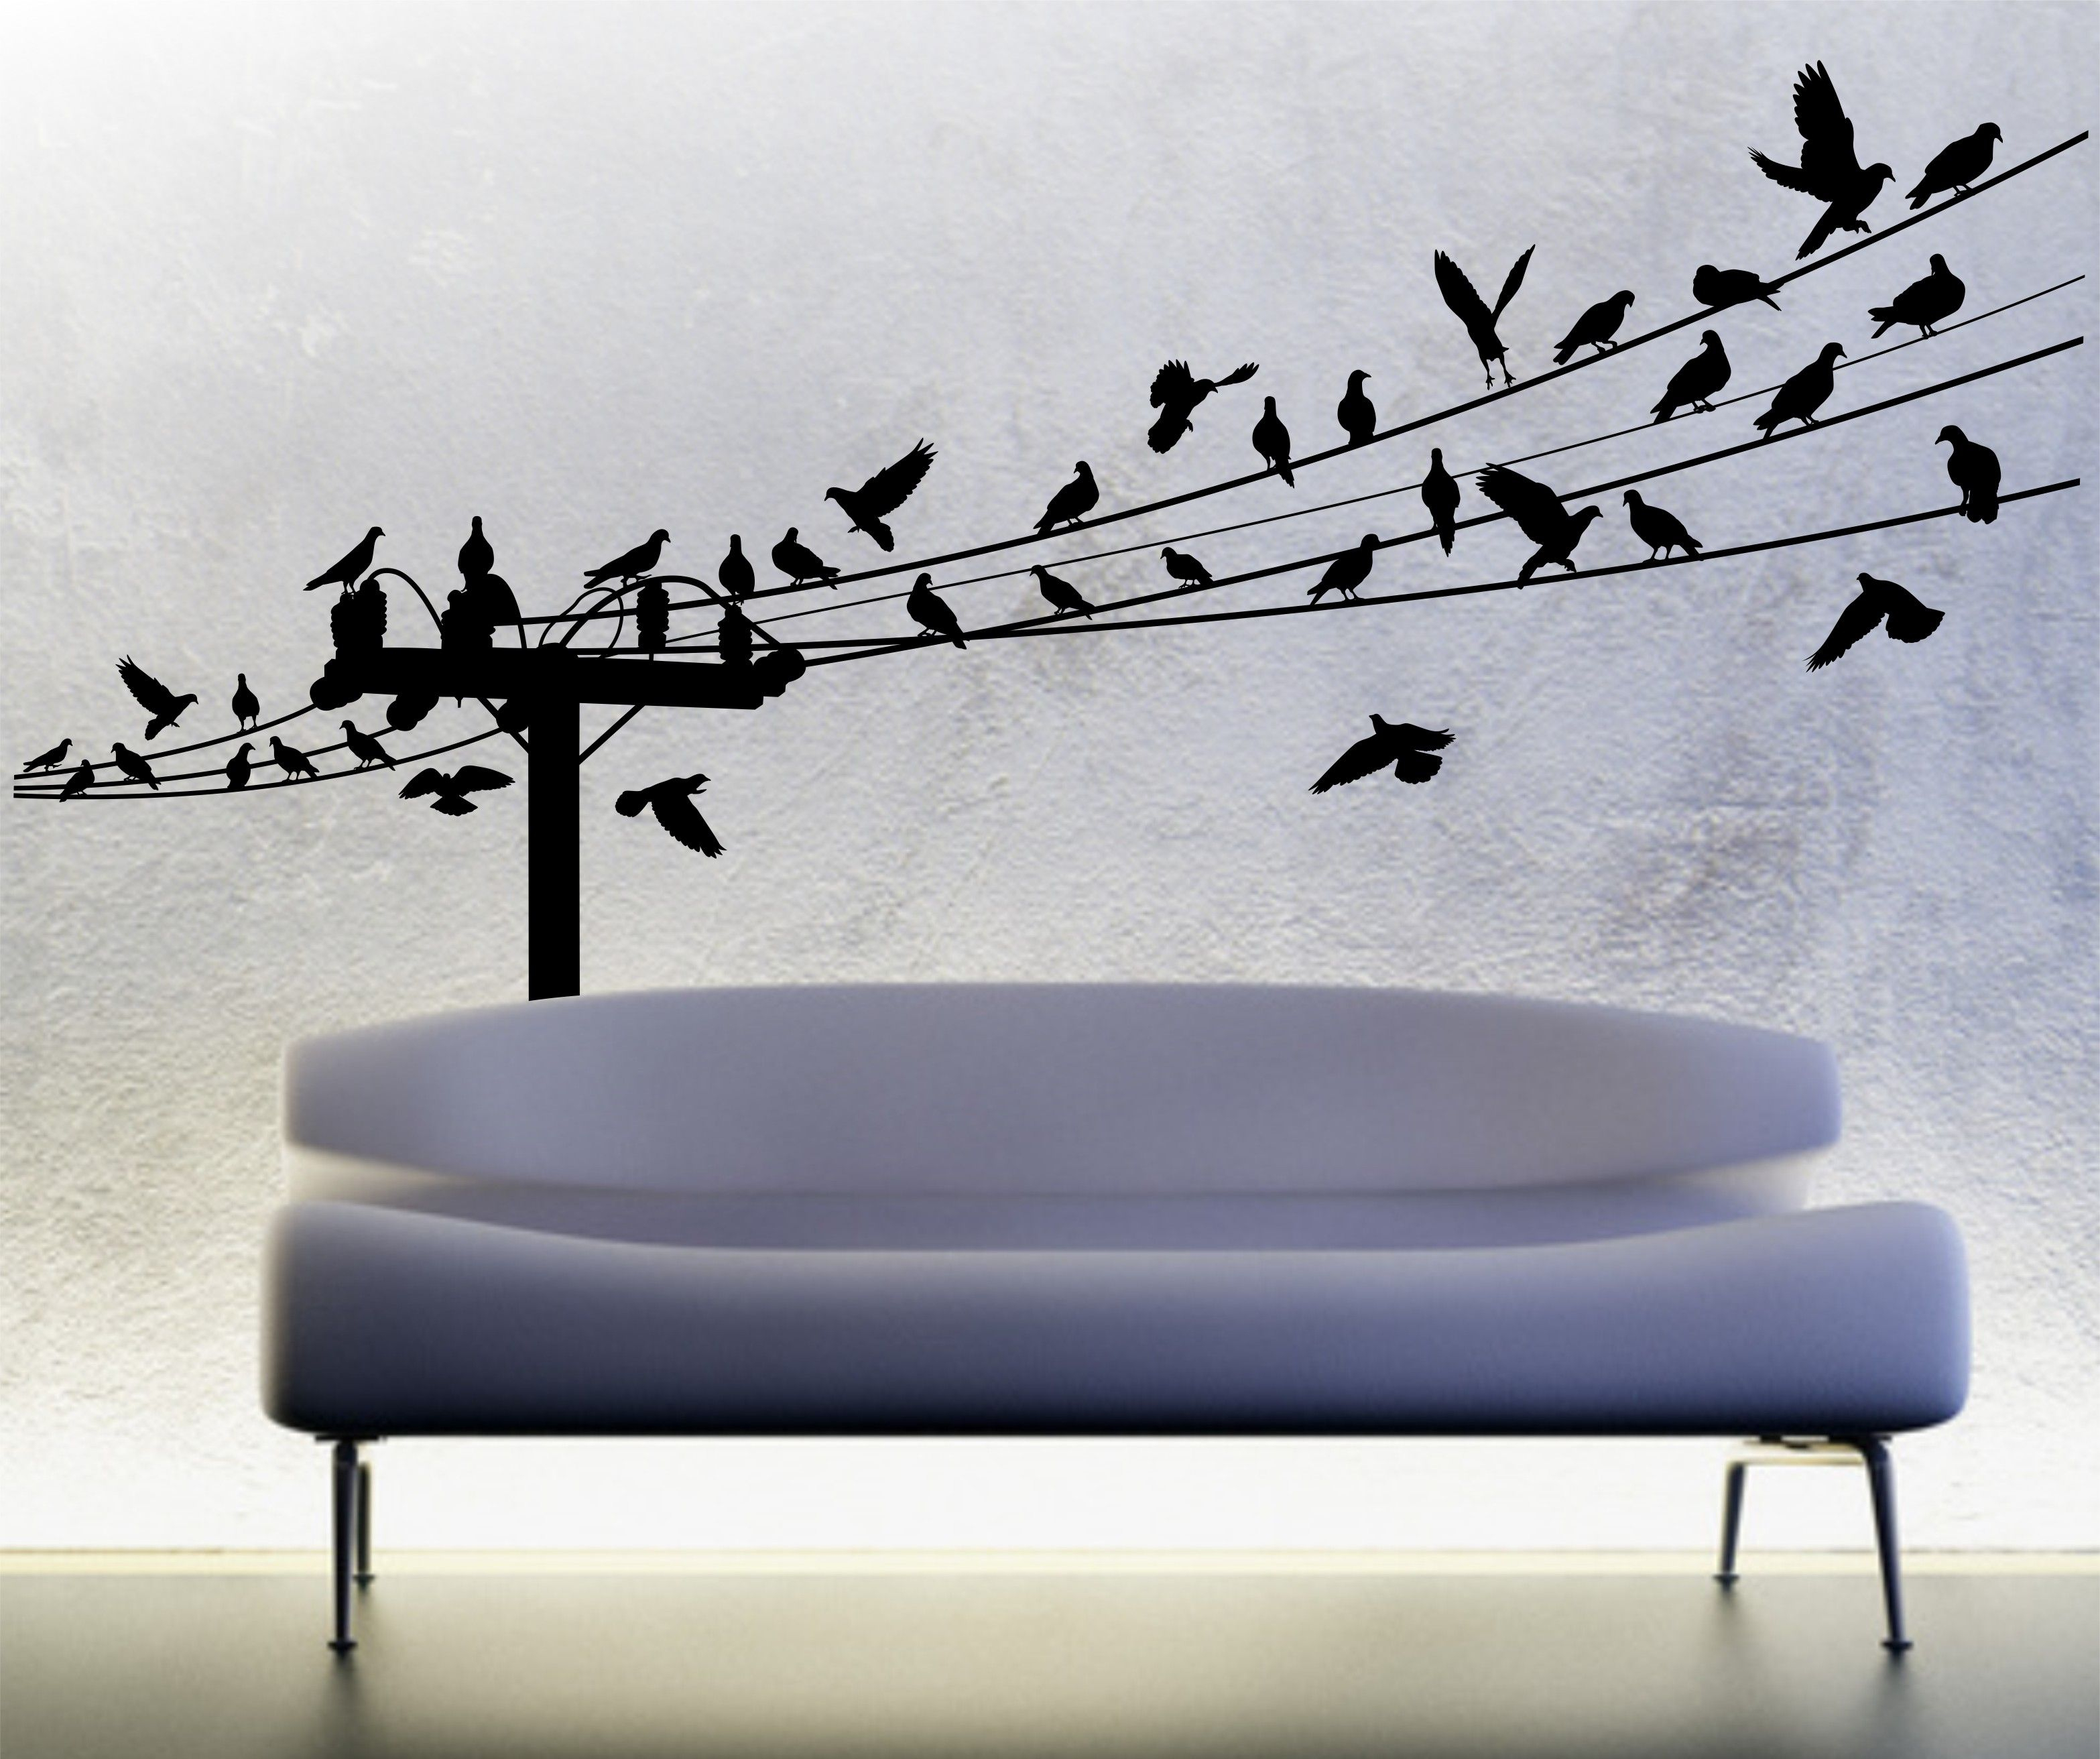 Birds On A Wire Wall Decal, Powerline Wall Decal, Power Line within Birds On A Wire Wall Decor (Image 11 of 30)